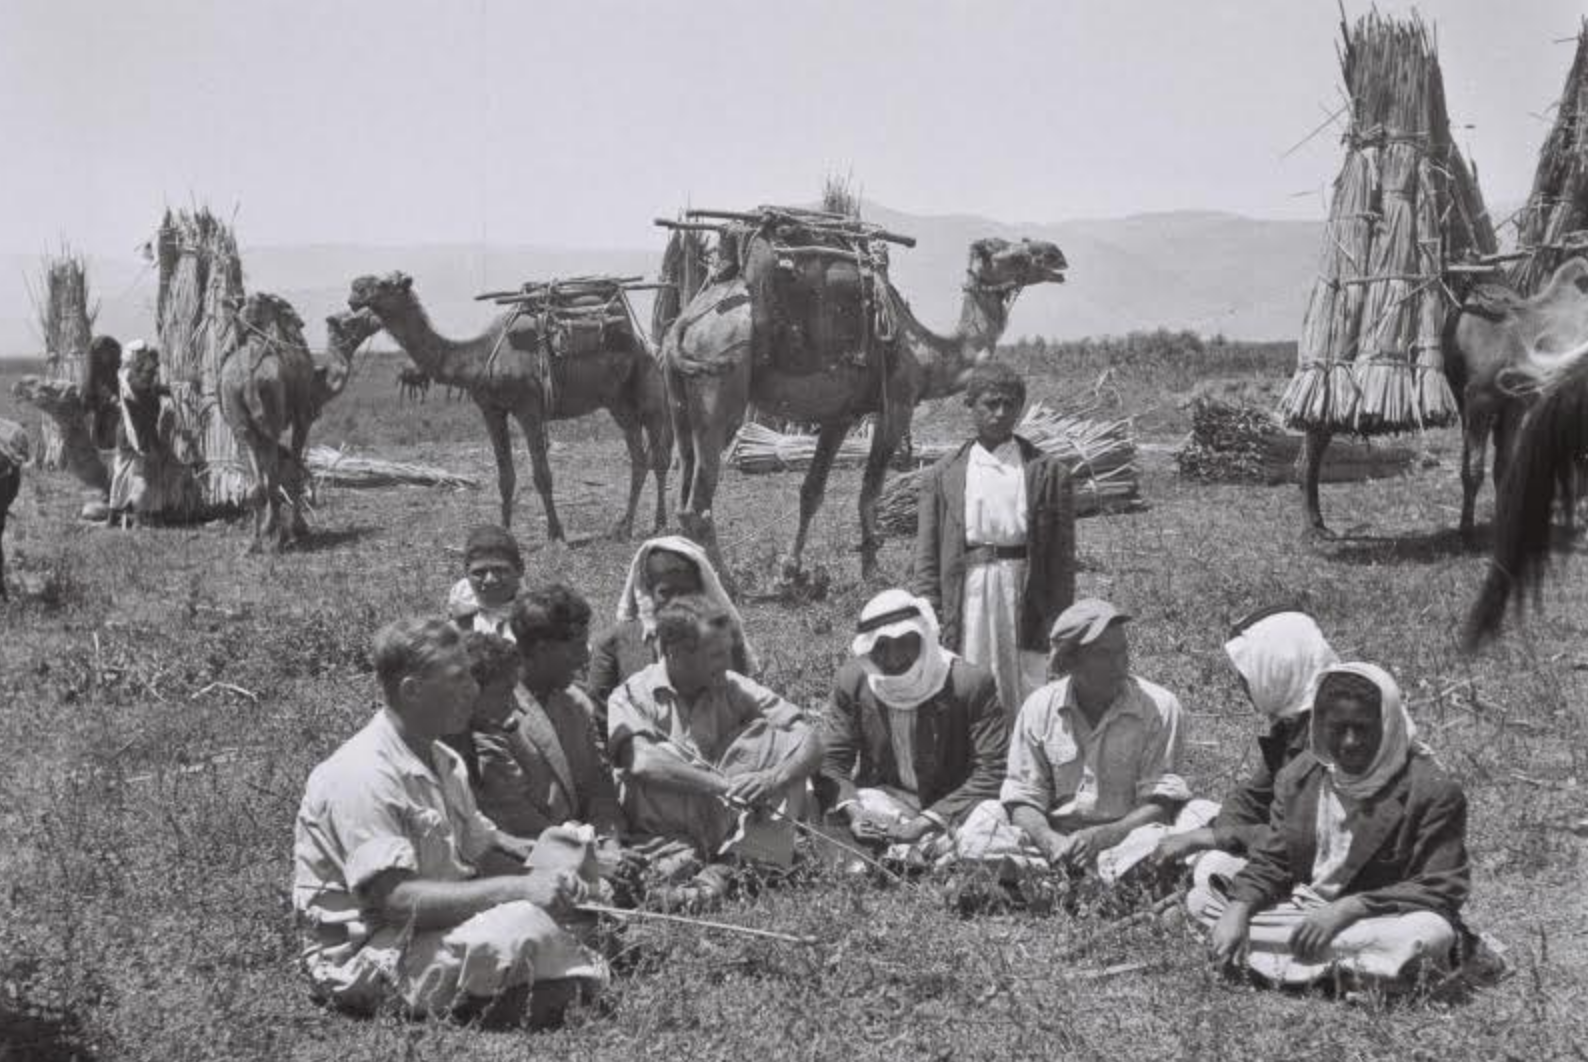 Palestinian farmers and their Jewish neighbors in the Lake Hula area, northern Palestine, 1946. (Zoltan Kluger/GPO)